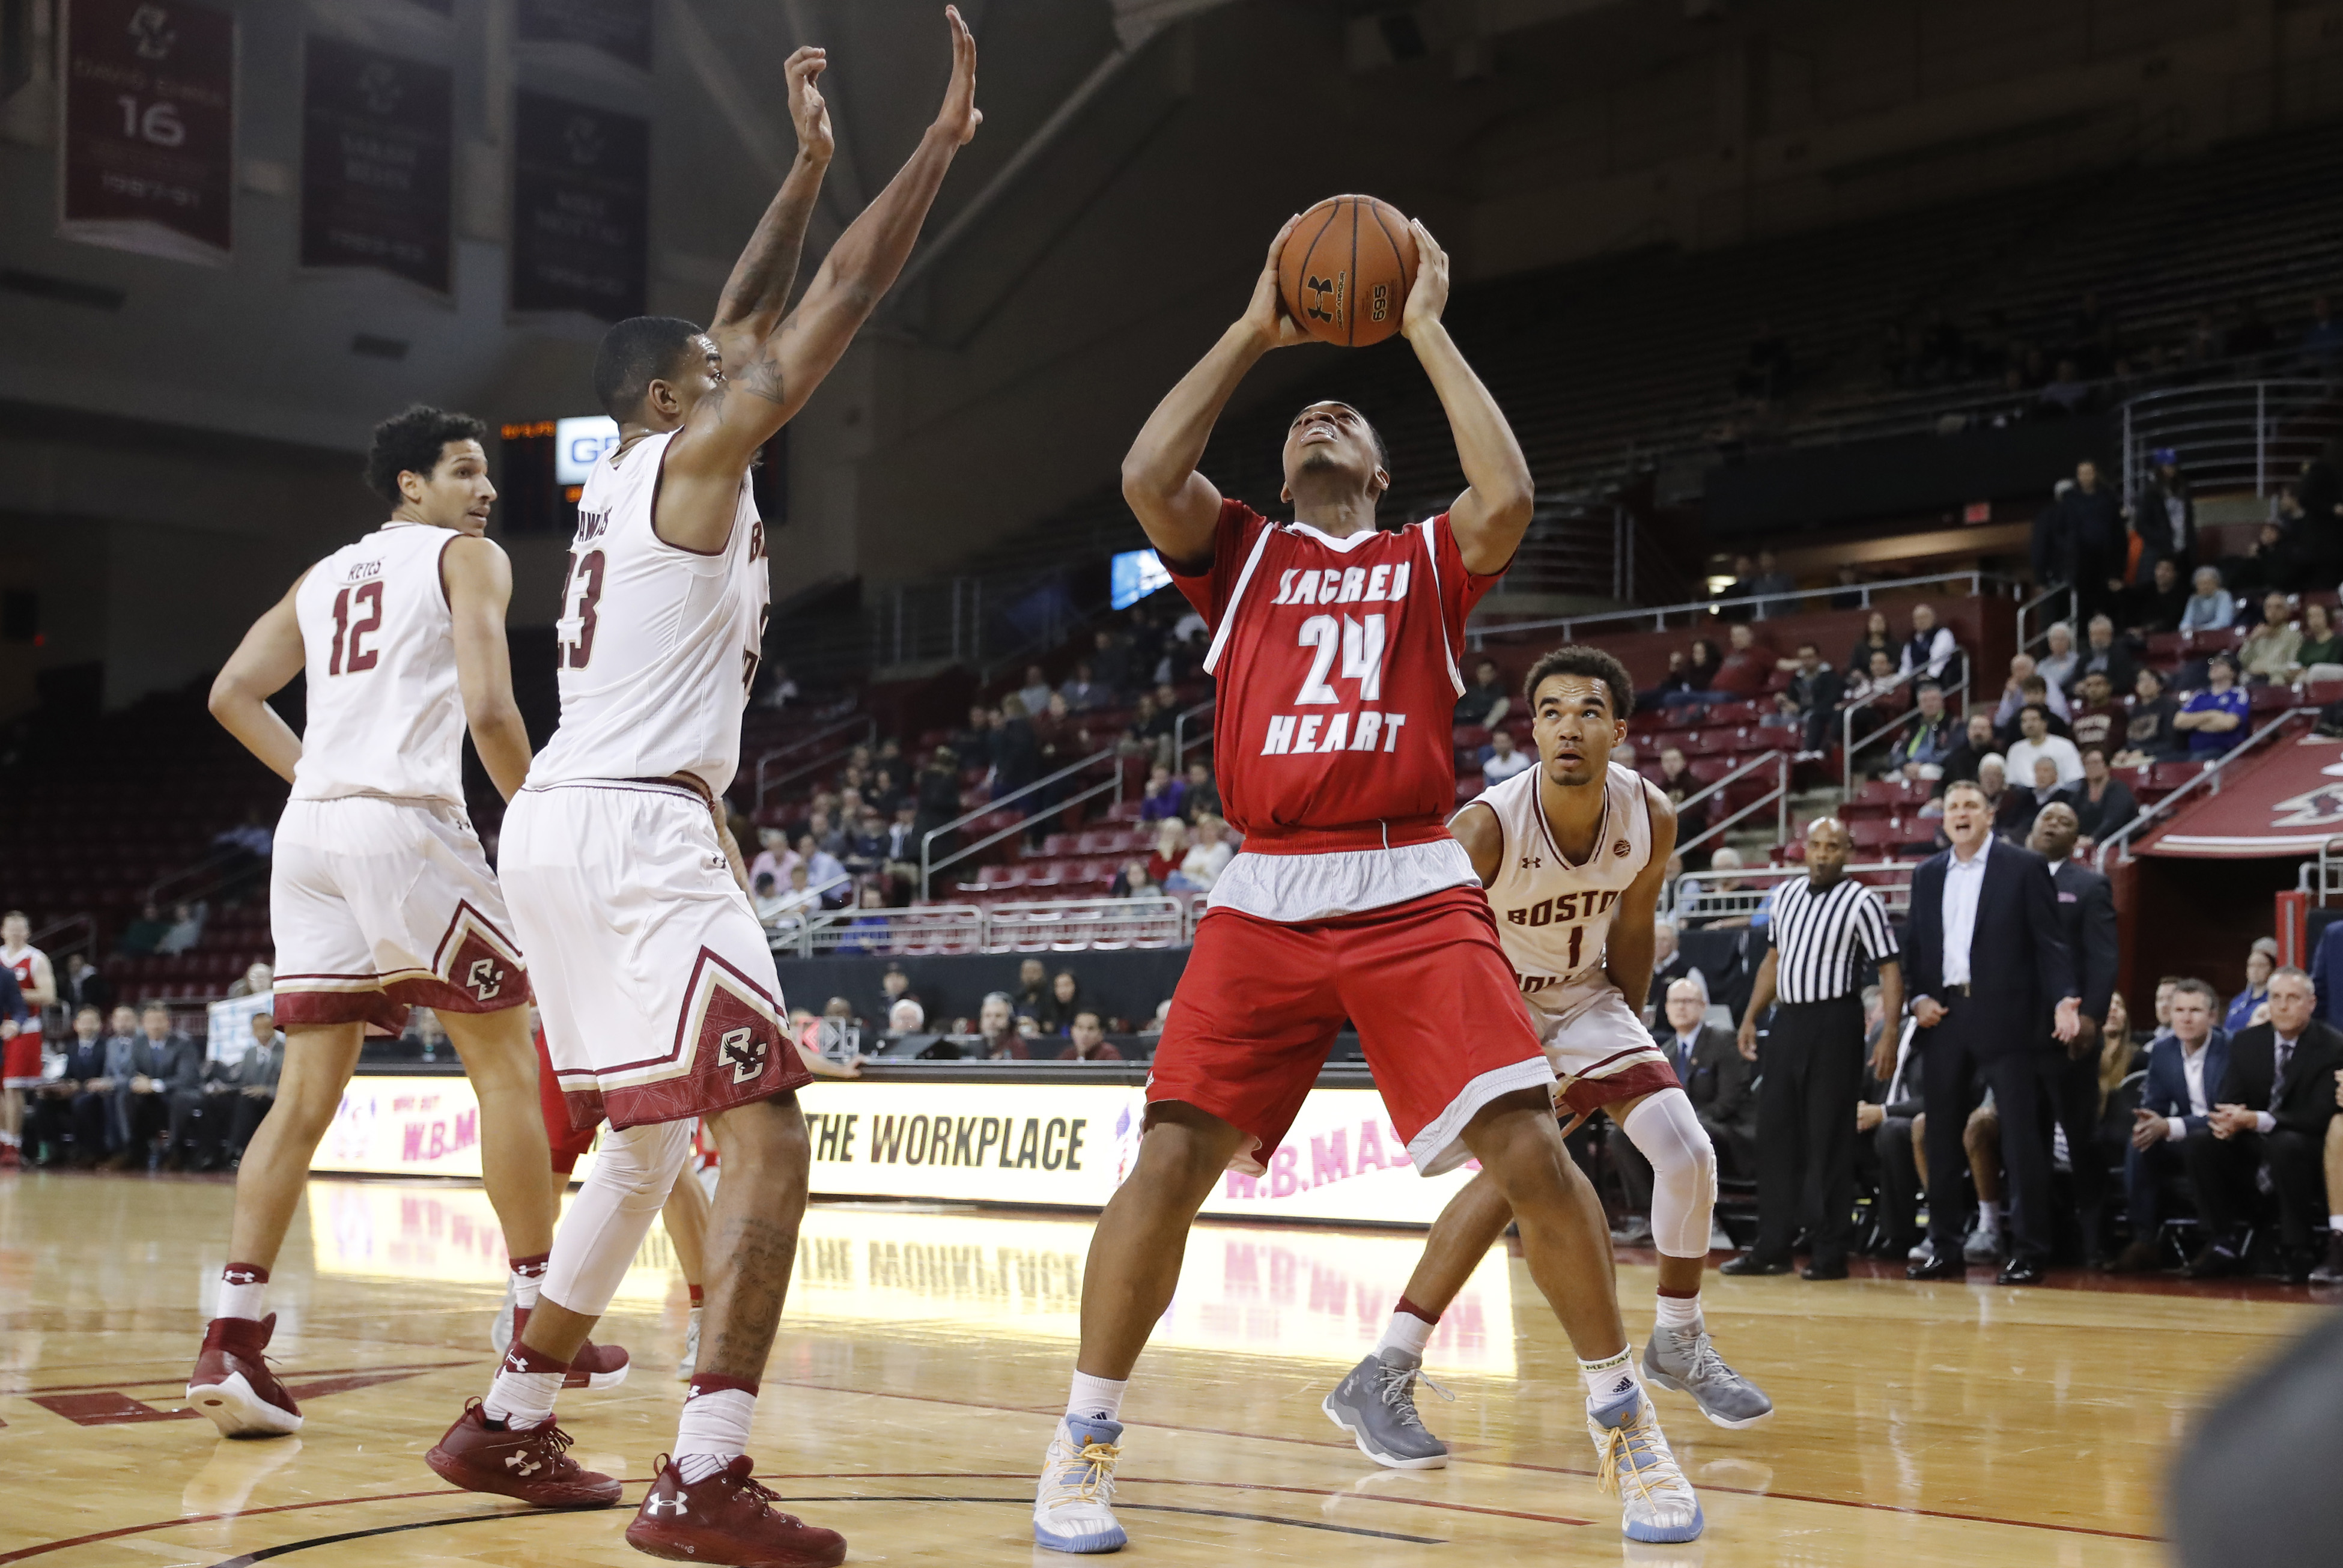 COLLEGE BASKETBALL: NOV 14 Sacred Heart at Boston College